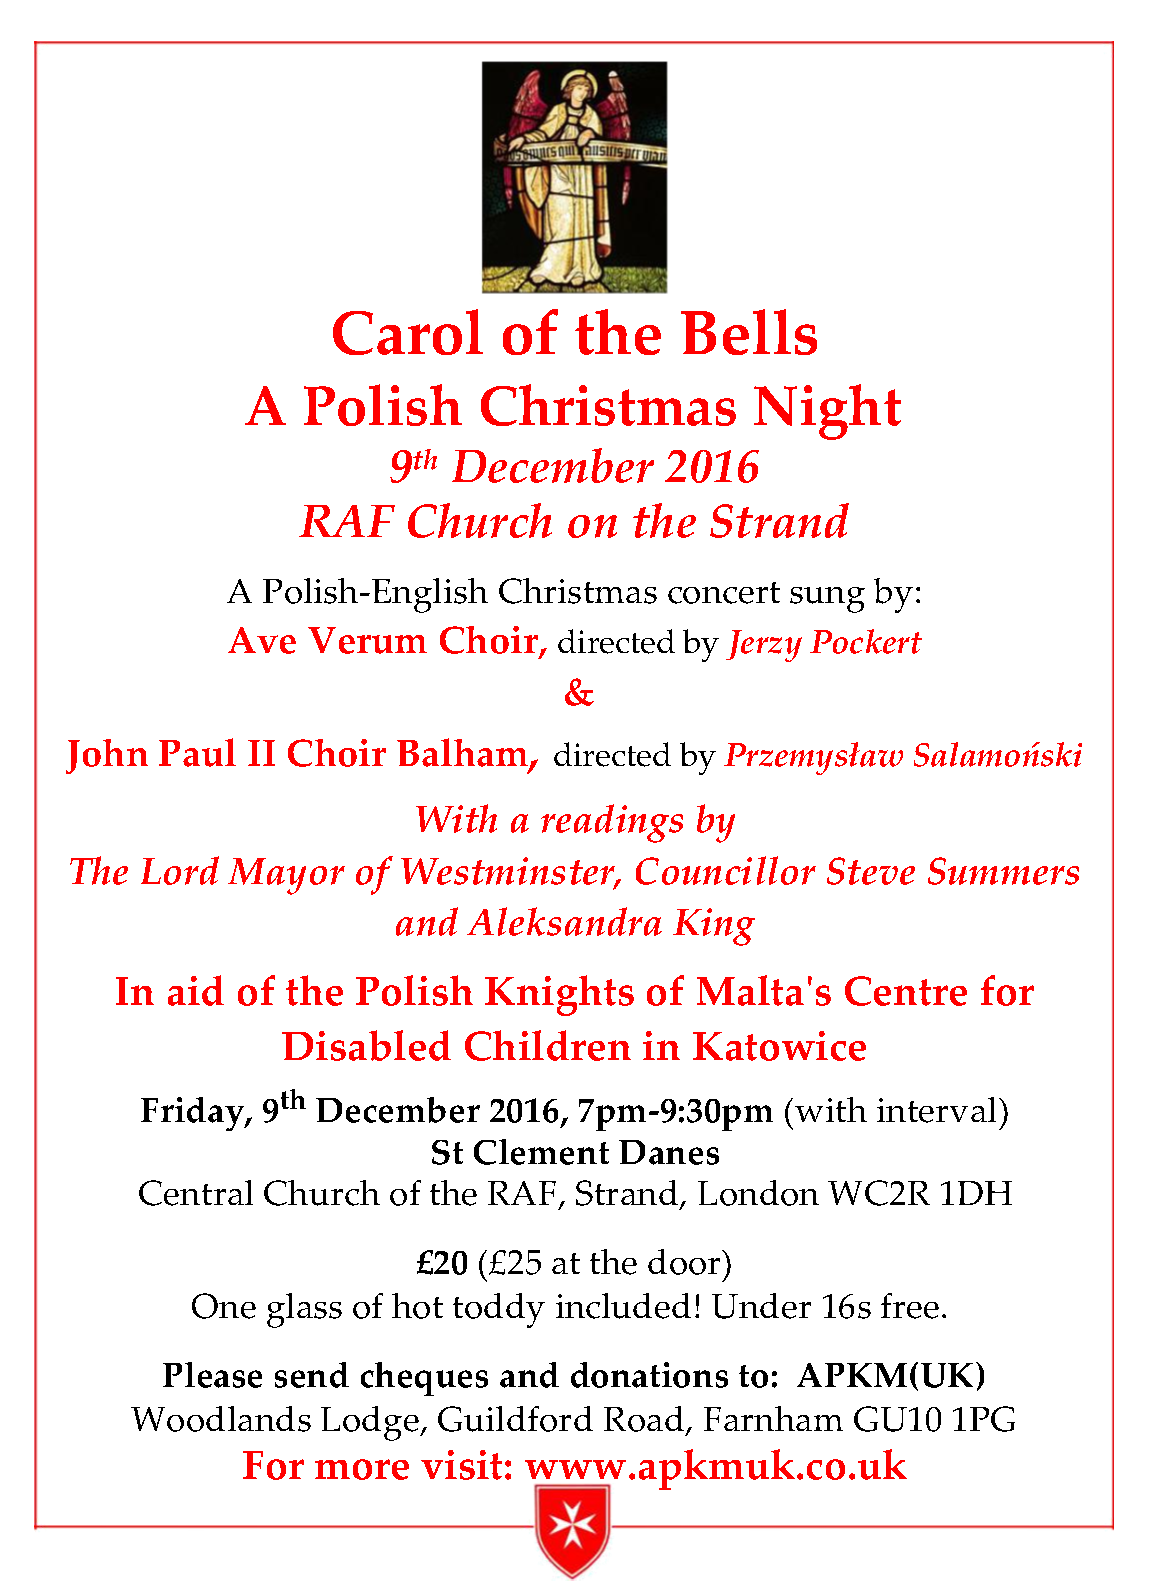 Carol of the Bells Invitation 9 December 2016